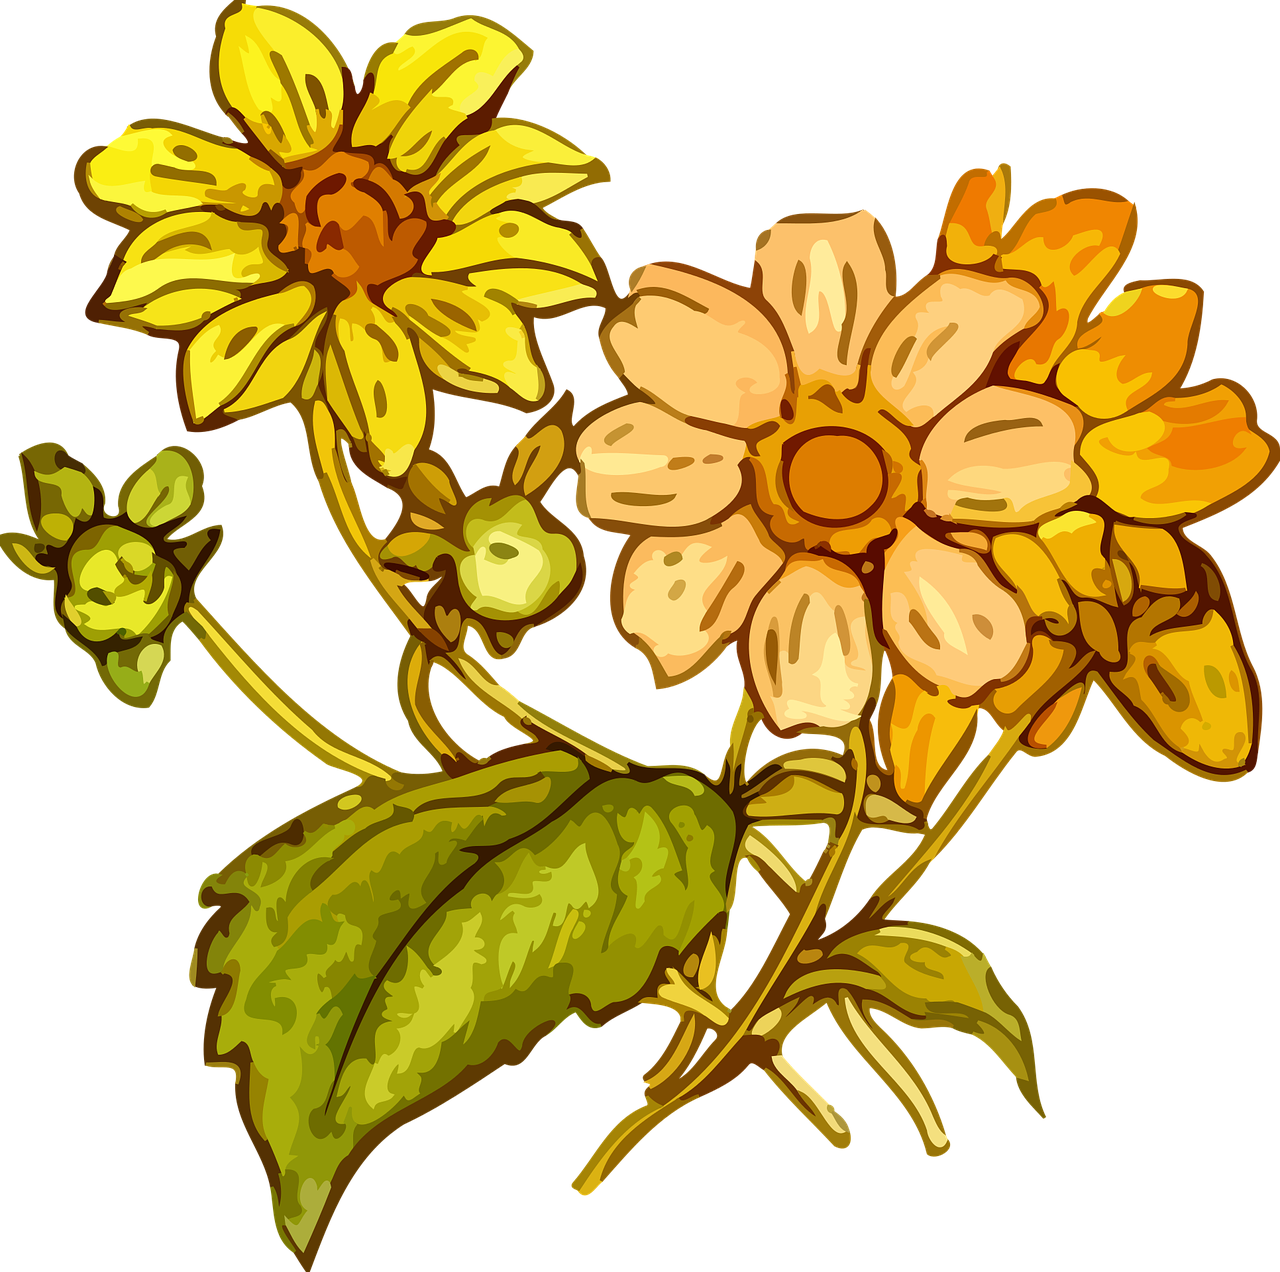 Drawn flower png. Image wildflowers drawing the